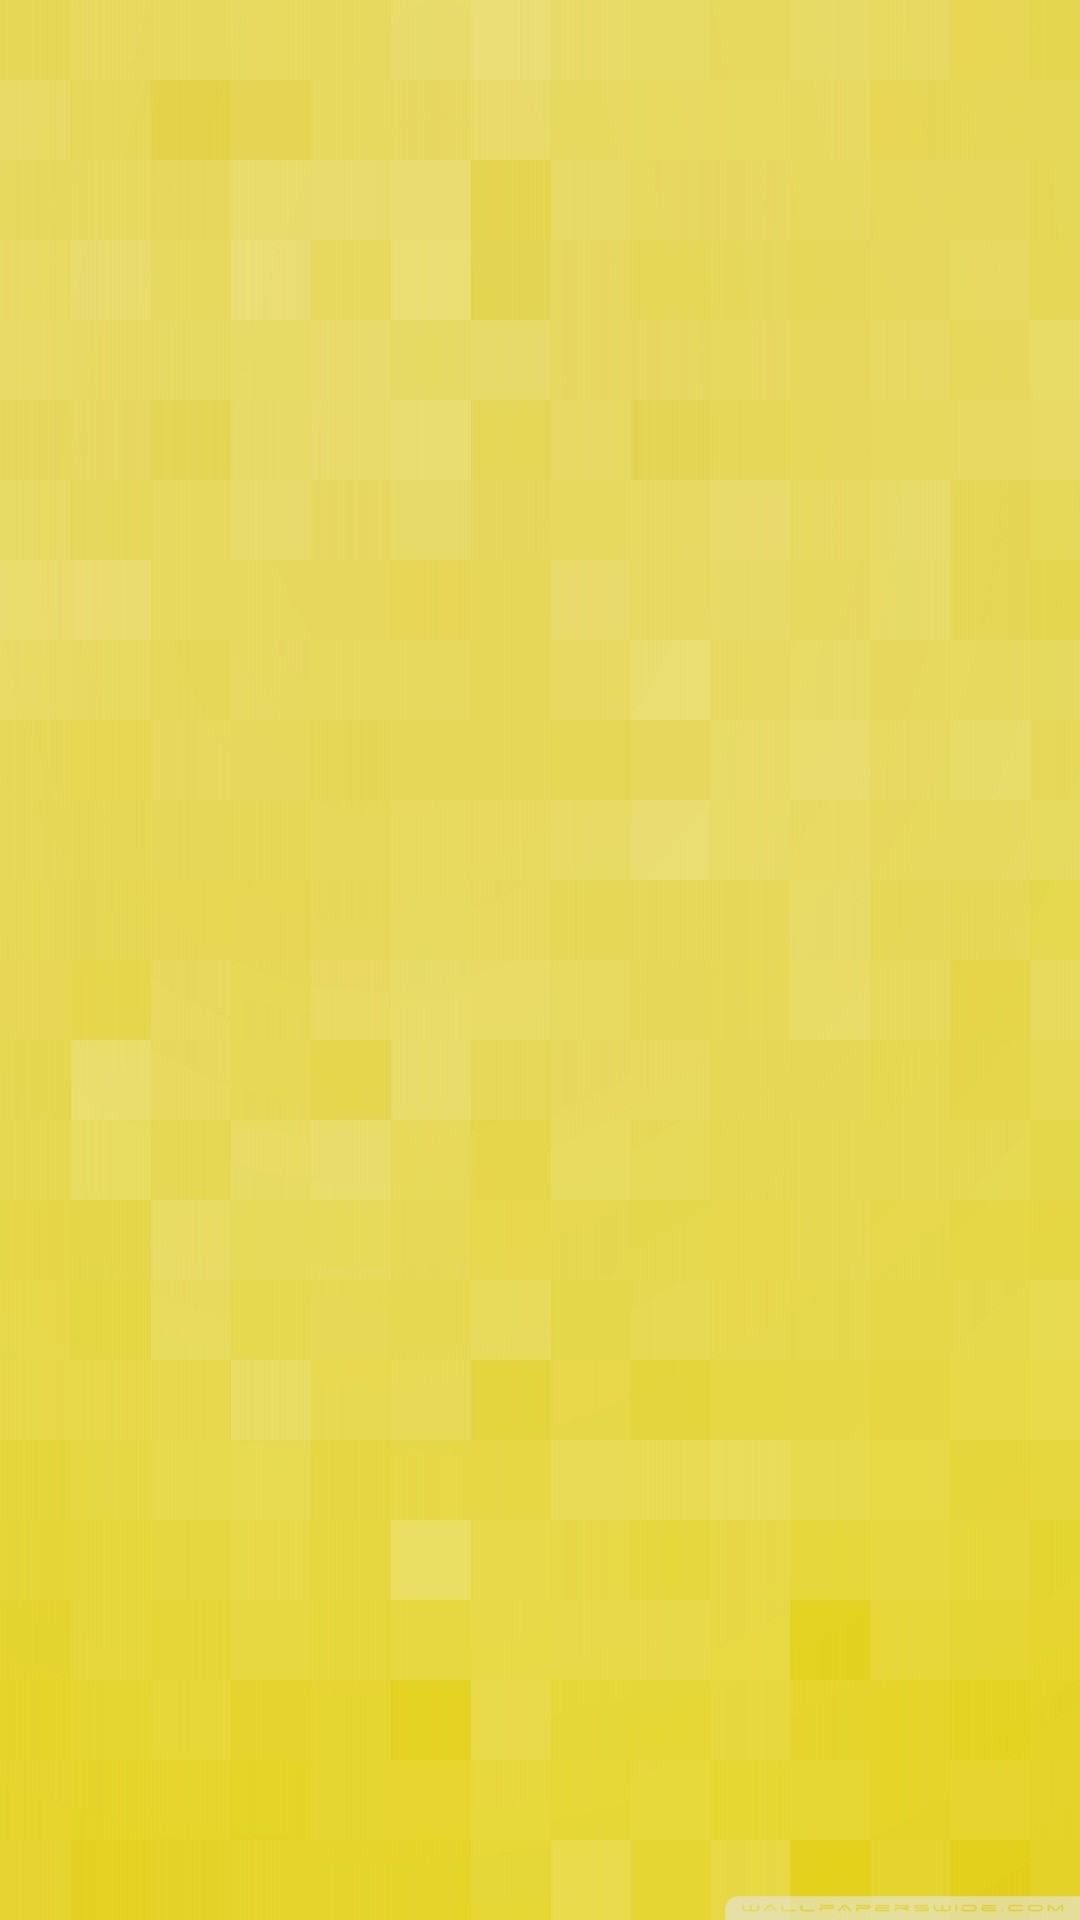 Free Yellow Pixels Background phone wallpaper by kingstevo